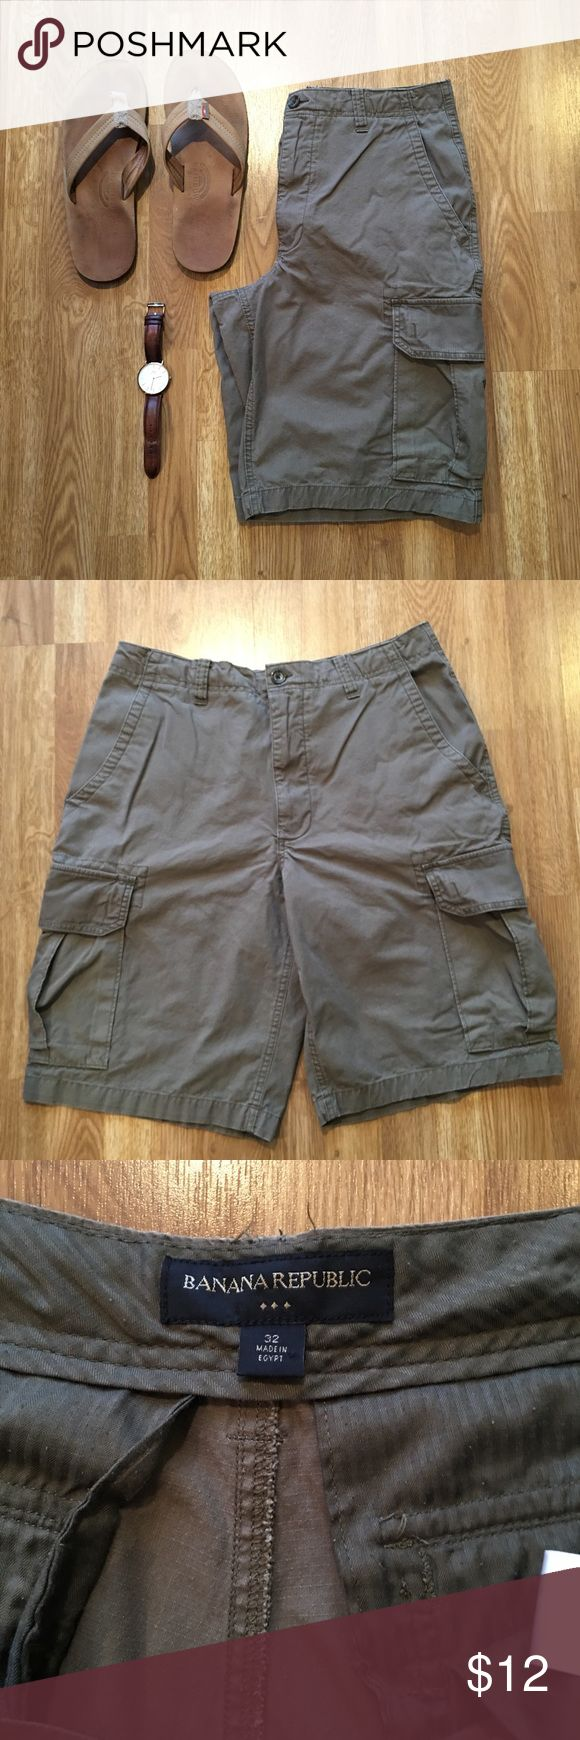 Men's Banana Republic Cargo Shorts In great condition cargo shorts from Banana Republic. These will be great for spring and summer. They are army green. All buttons are still there. Size 32 waist Banana Republic Shorts Cargo